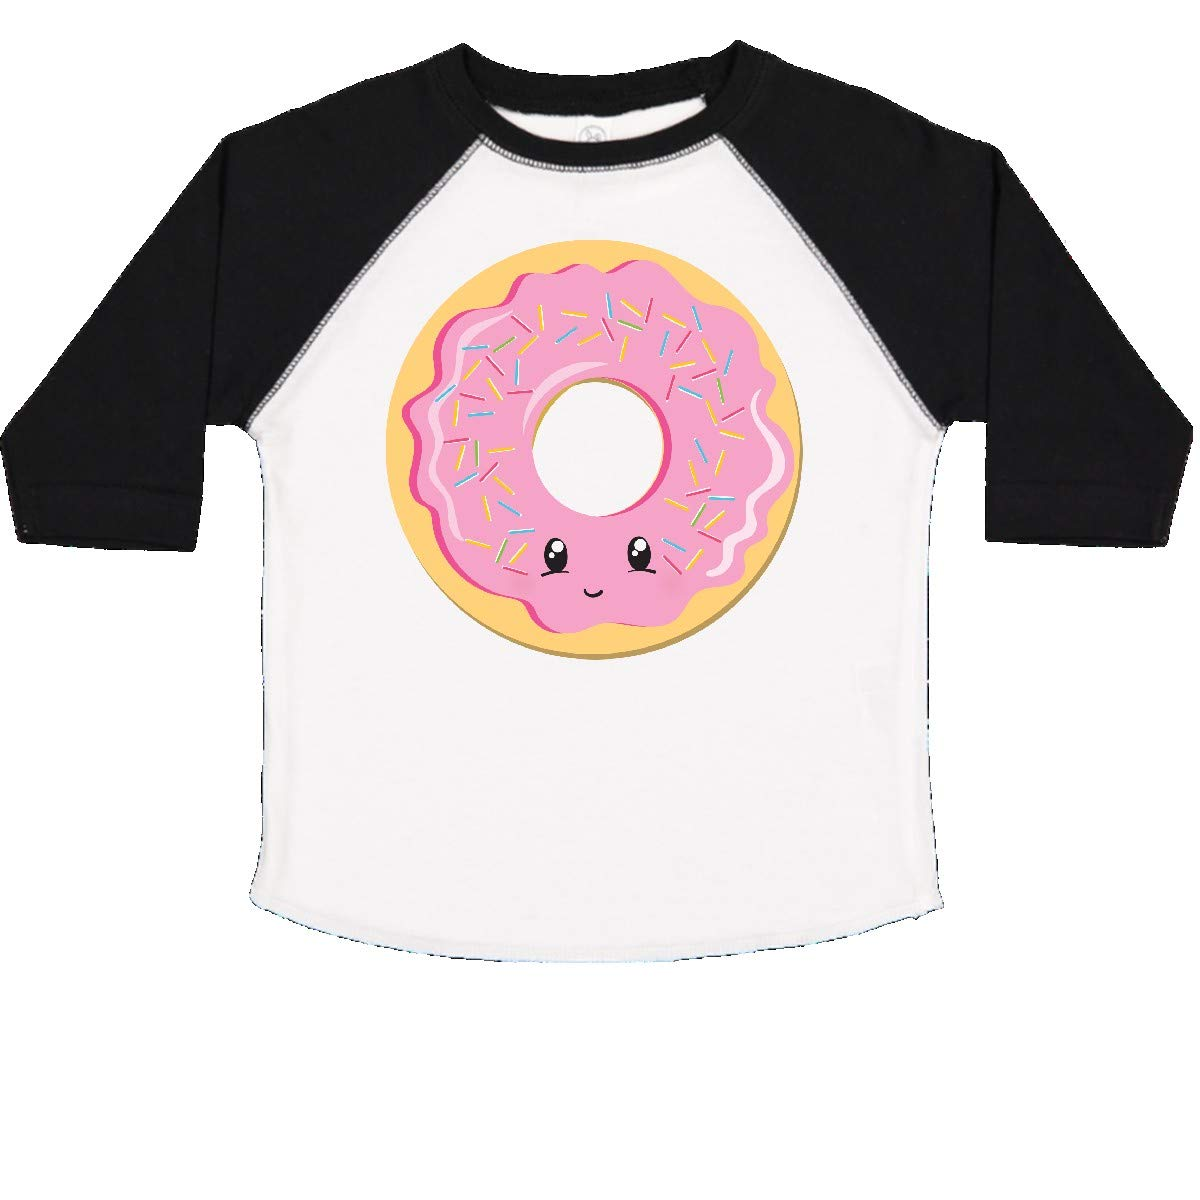 inktastic Light Pink Donut Toddler T-Shirt 3T White and Black by inktastic